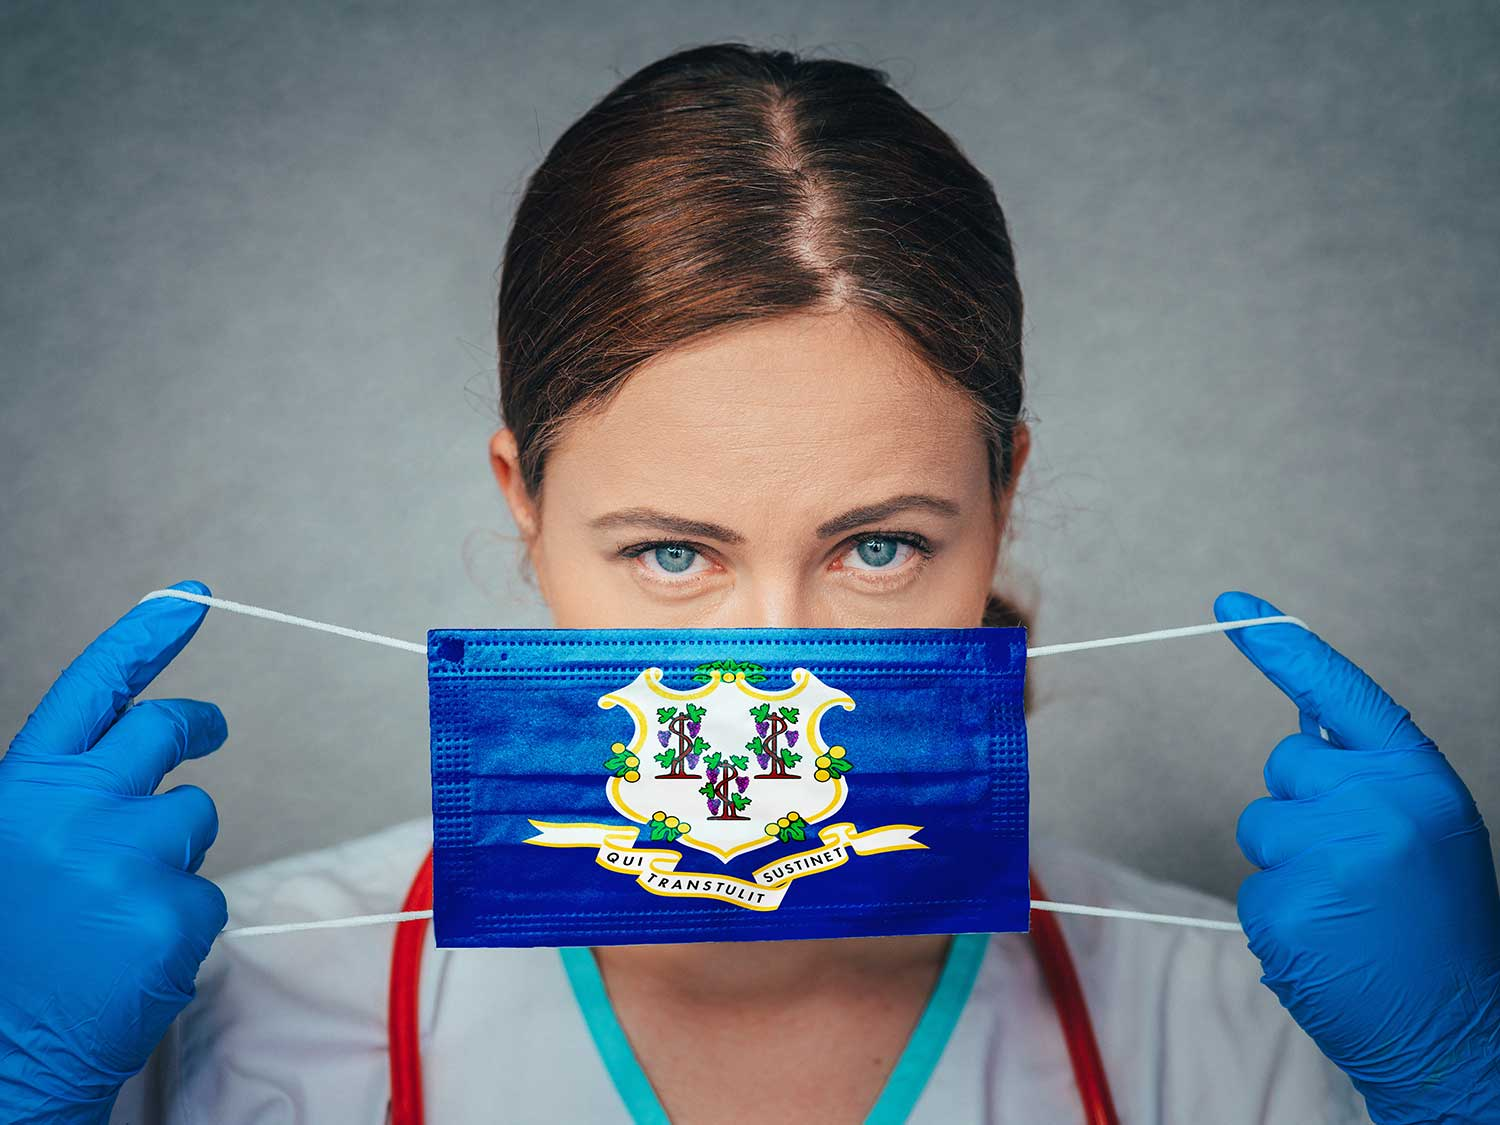 Surgeon With Medical Liability Insurance Placing A Mask With The Connecticut State Flag Over Her Face